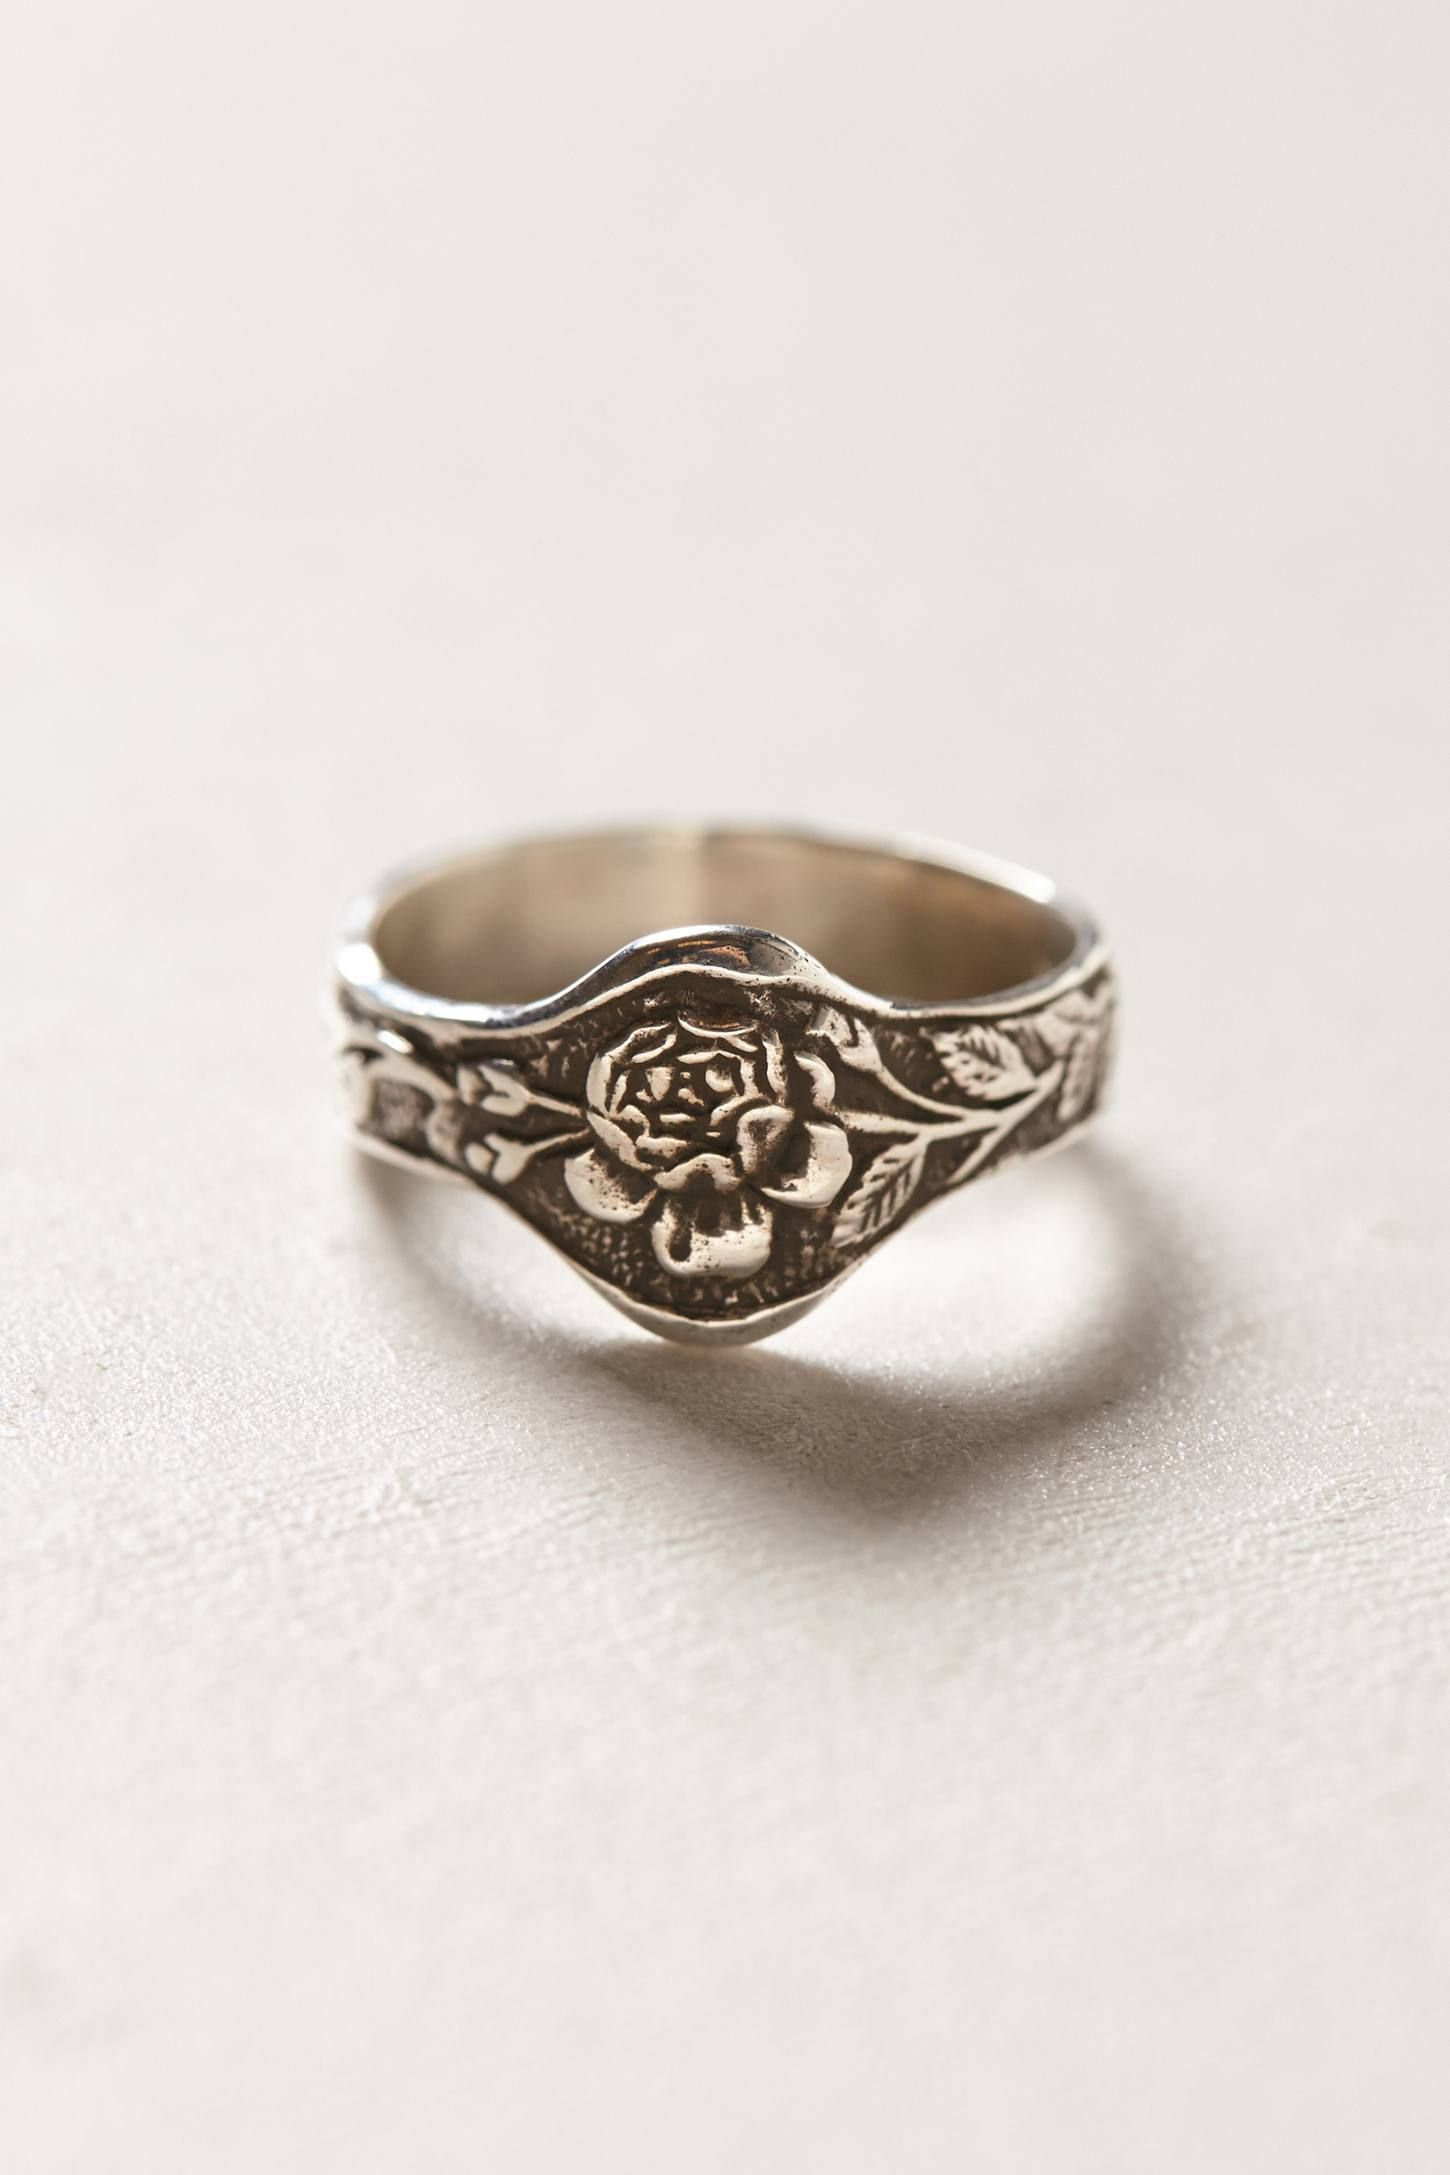 Engraved Rose Ring Jewelry Accessories Jewelry Accessories